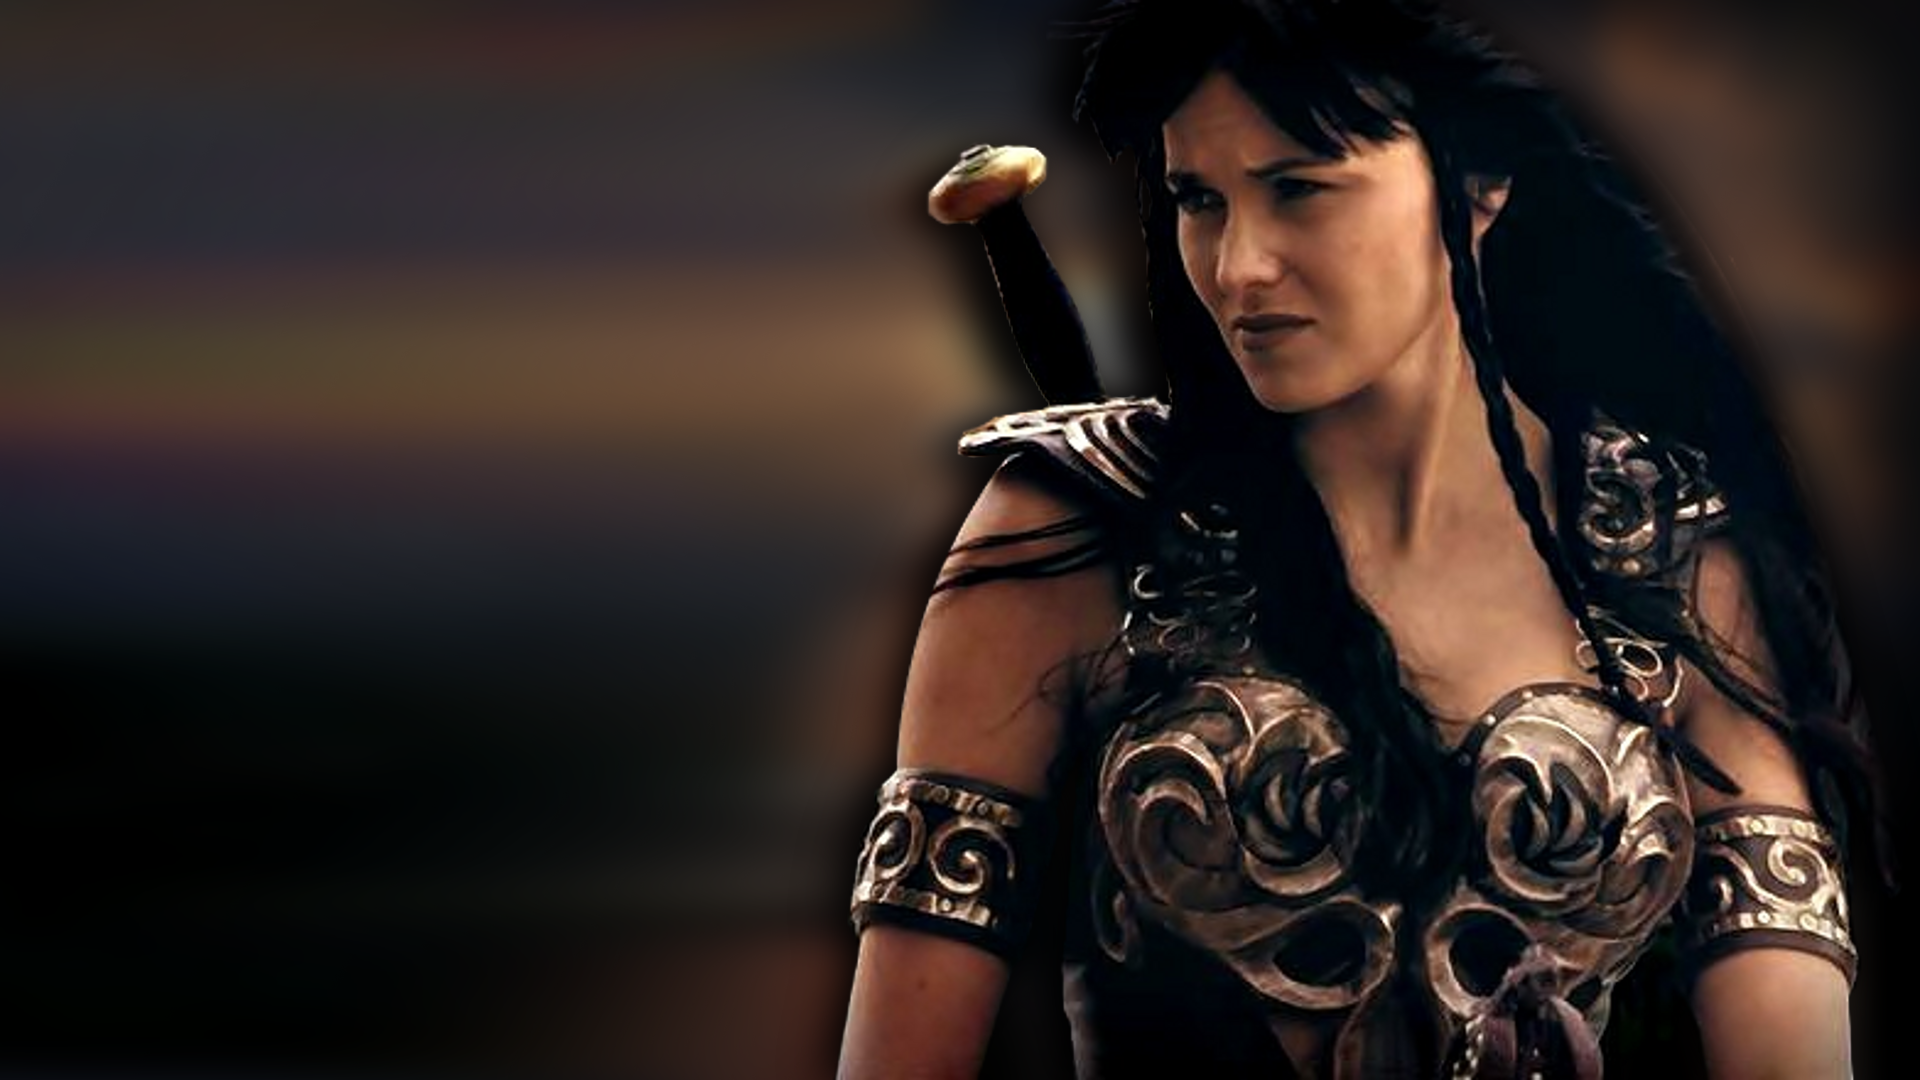 Xena Warrior Princess Full HD Wallpaper And Background Image